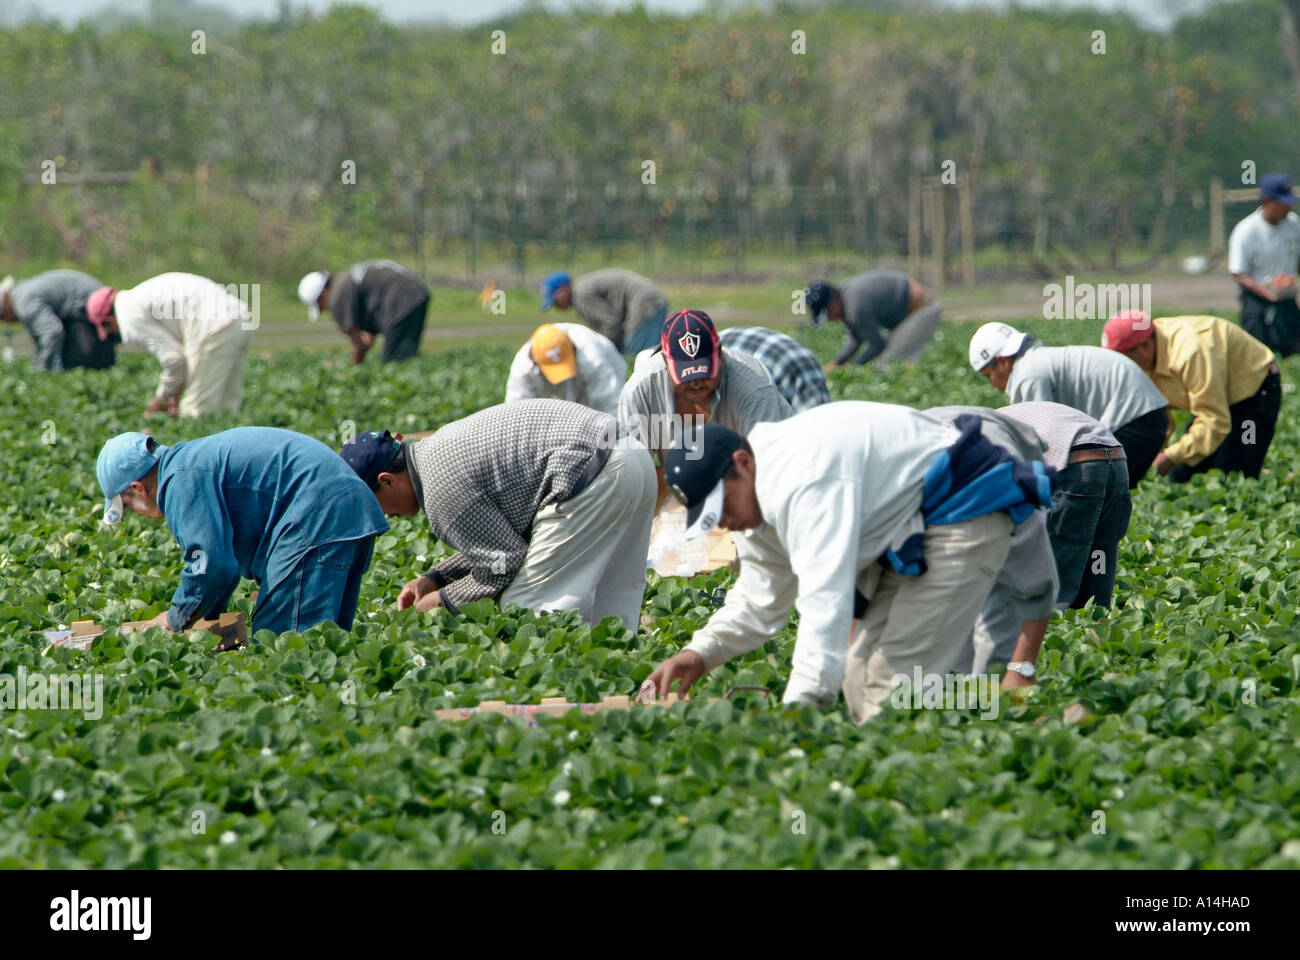 mexican migrant workers Migrant farm workers from mexico take a break while working at the grant family farms in wellington, colorado the farm was the largest organic vegetable farm outside of california greece .